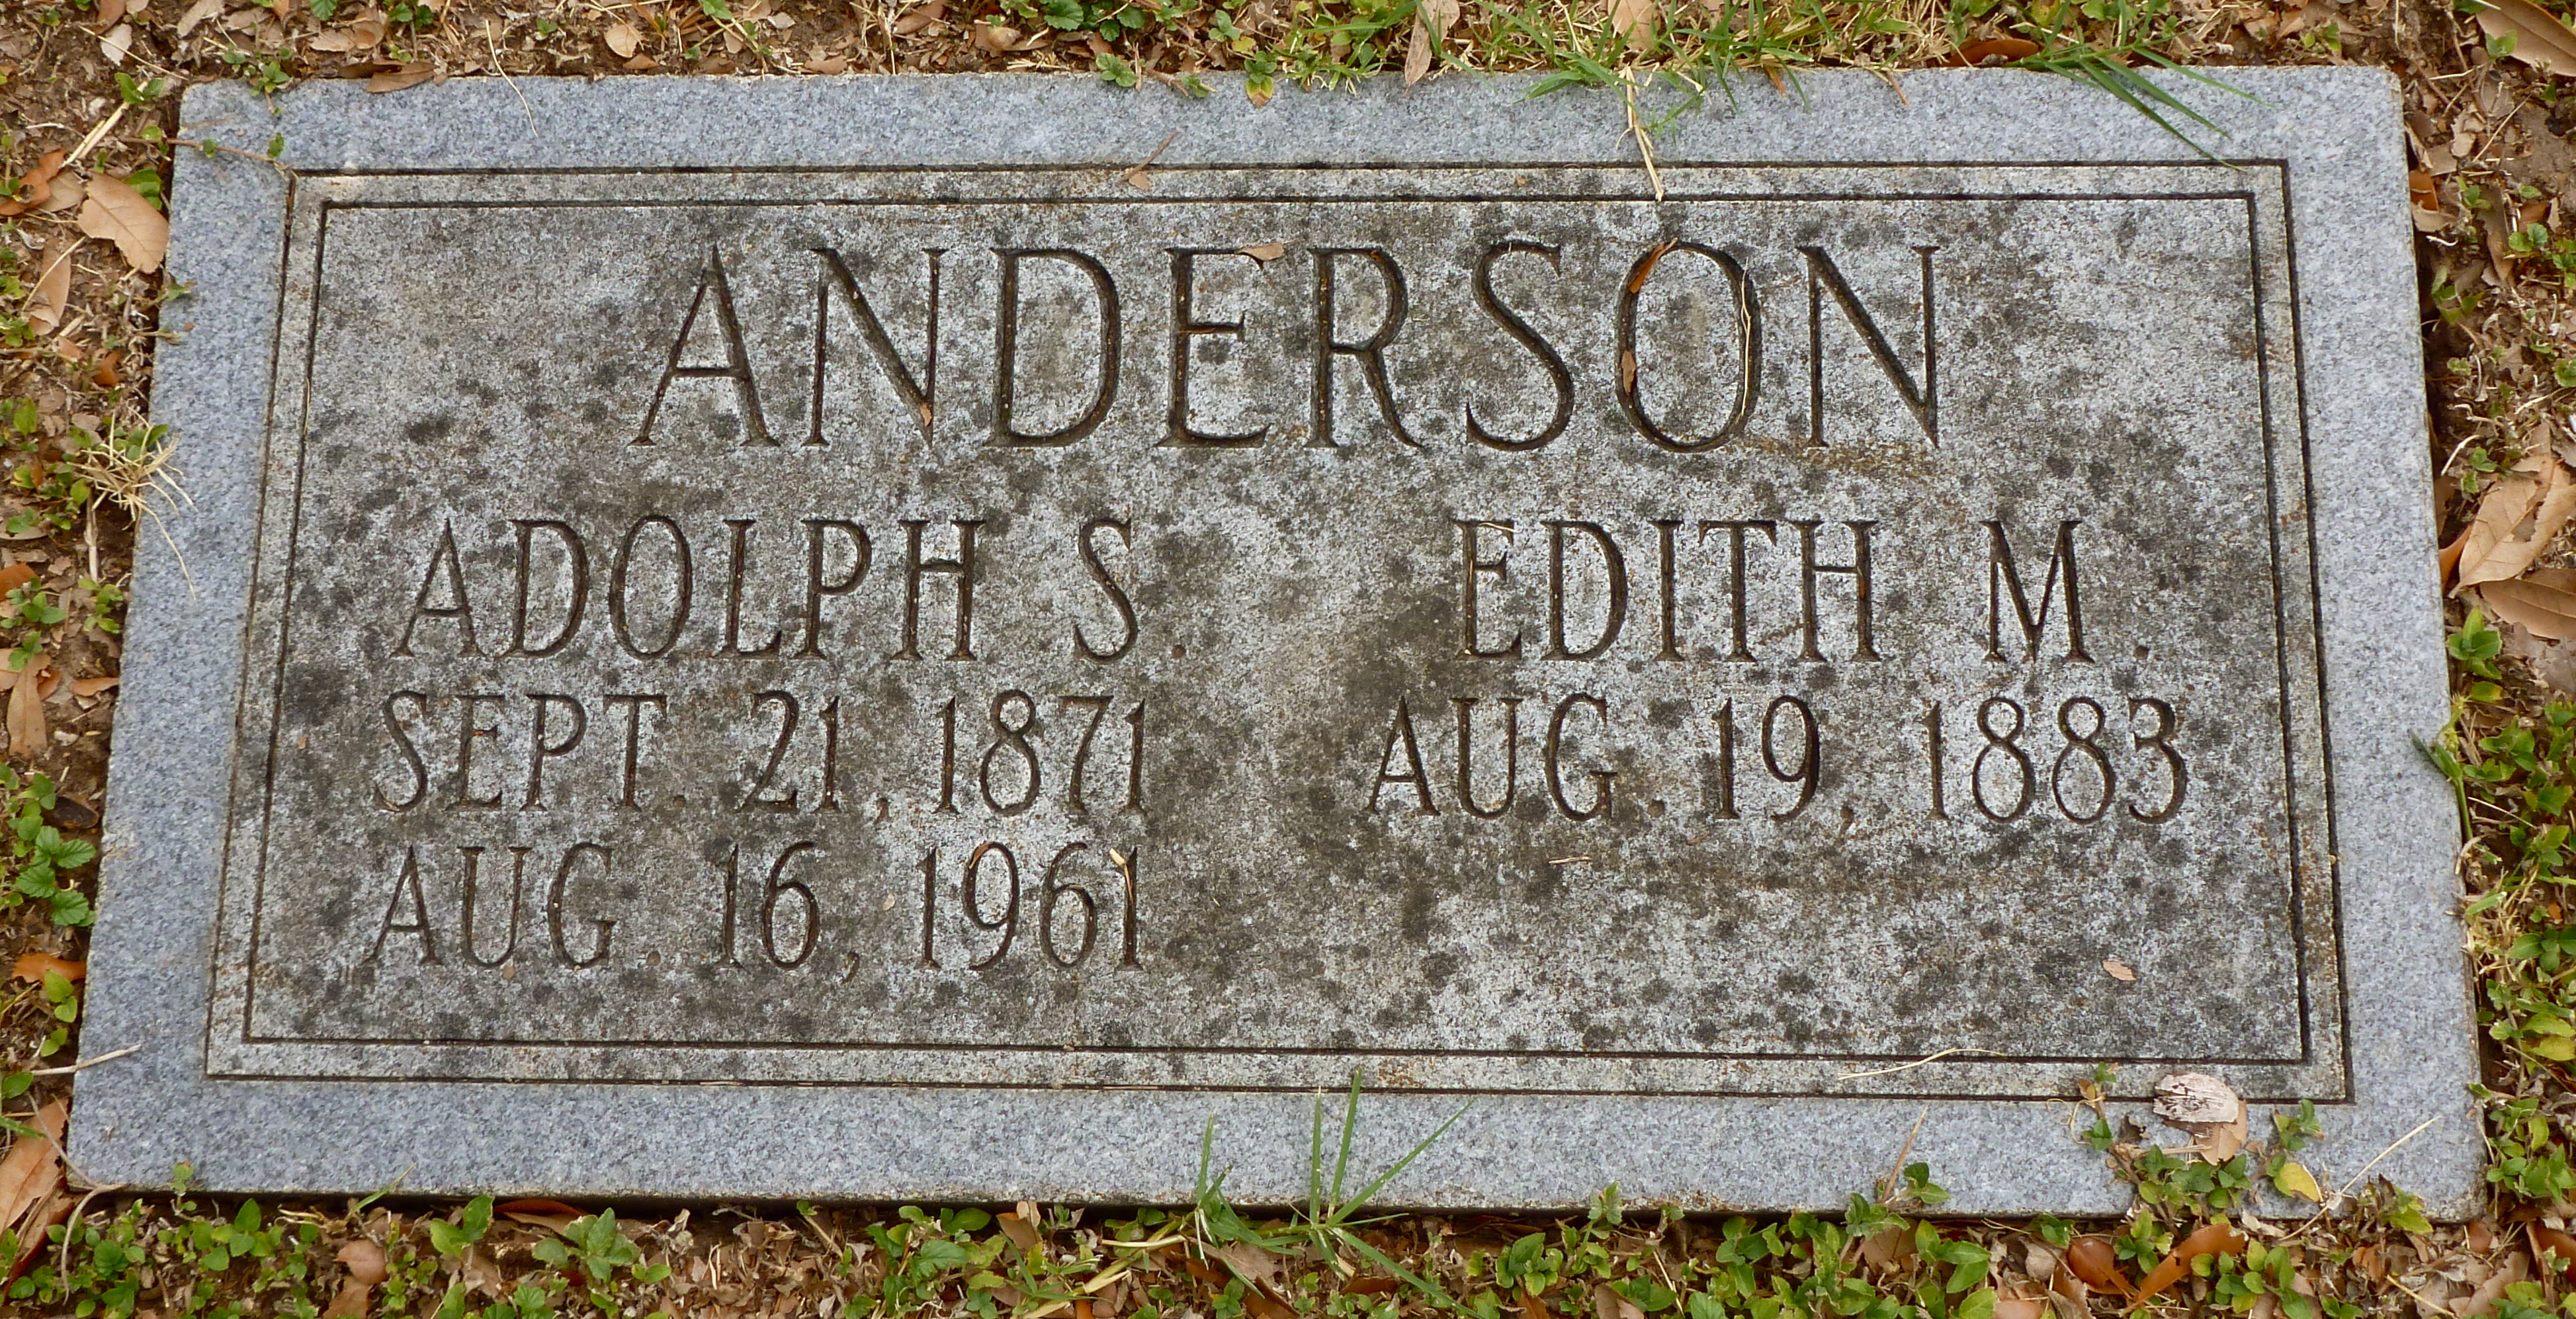 Adolph S Anderson